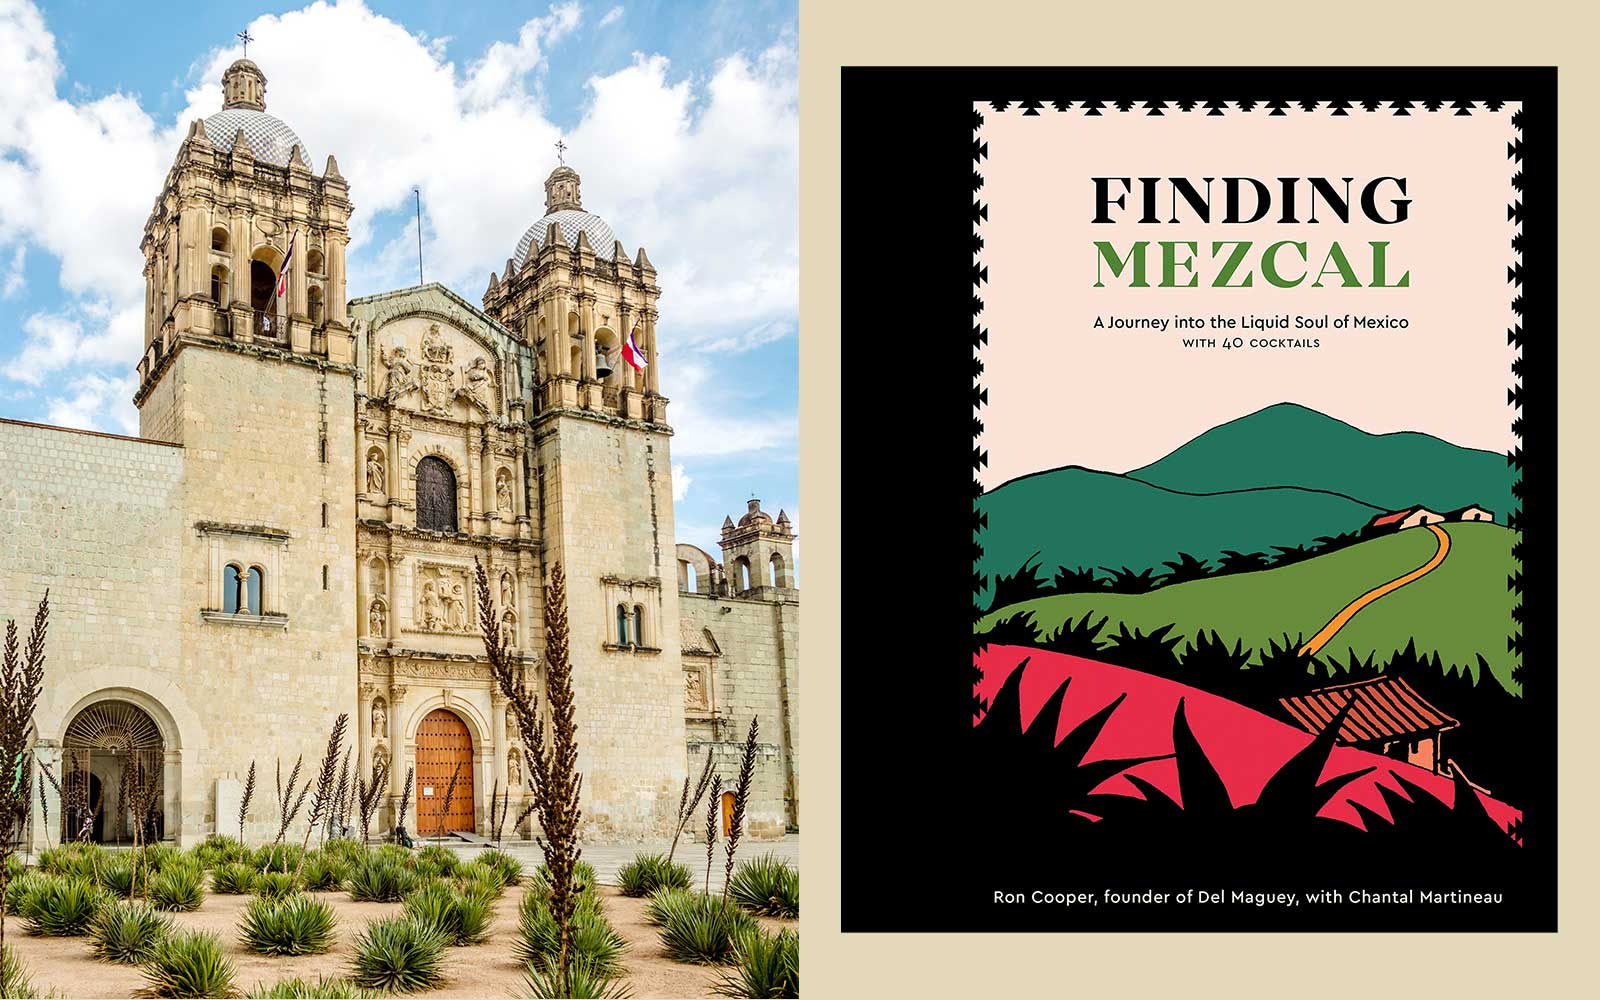 Church of Santo Domingo in Oaxaca and the book Finding Mezcal